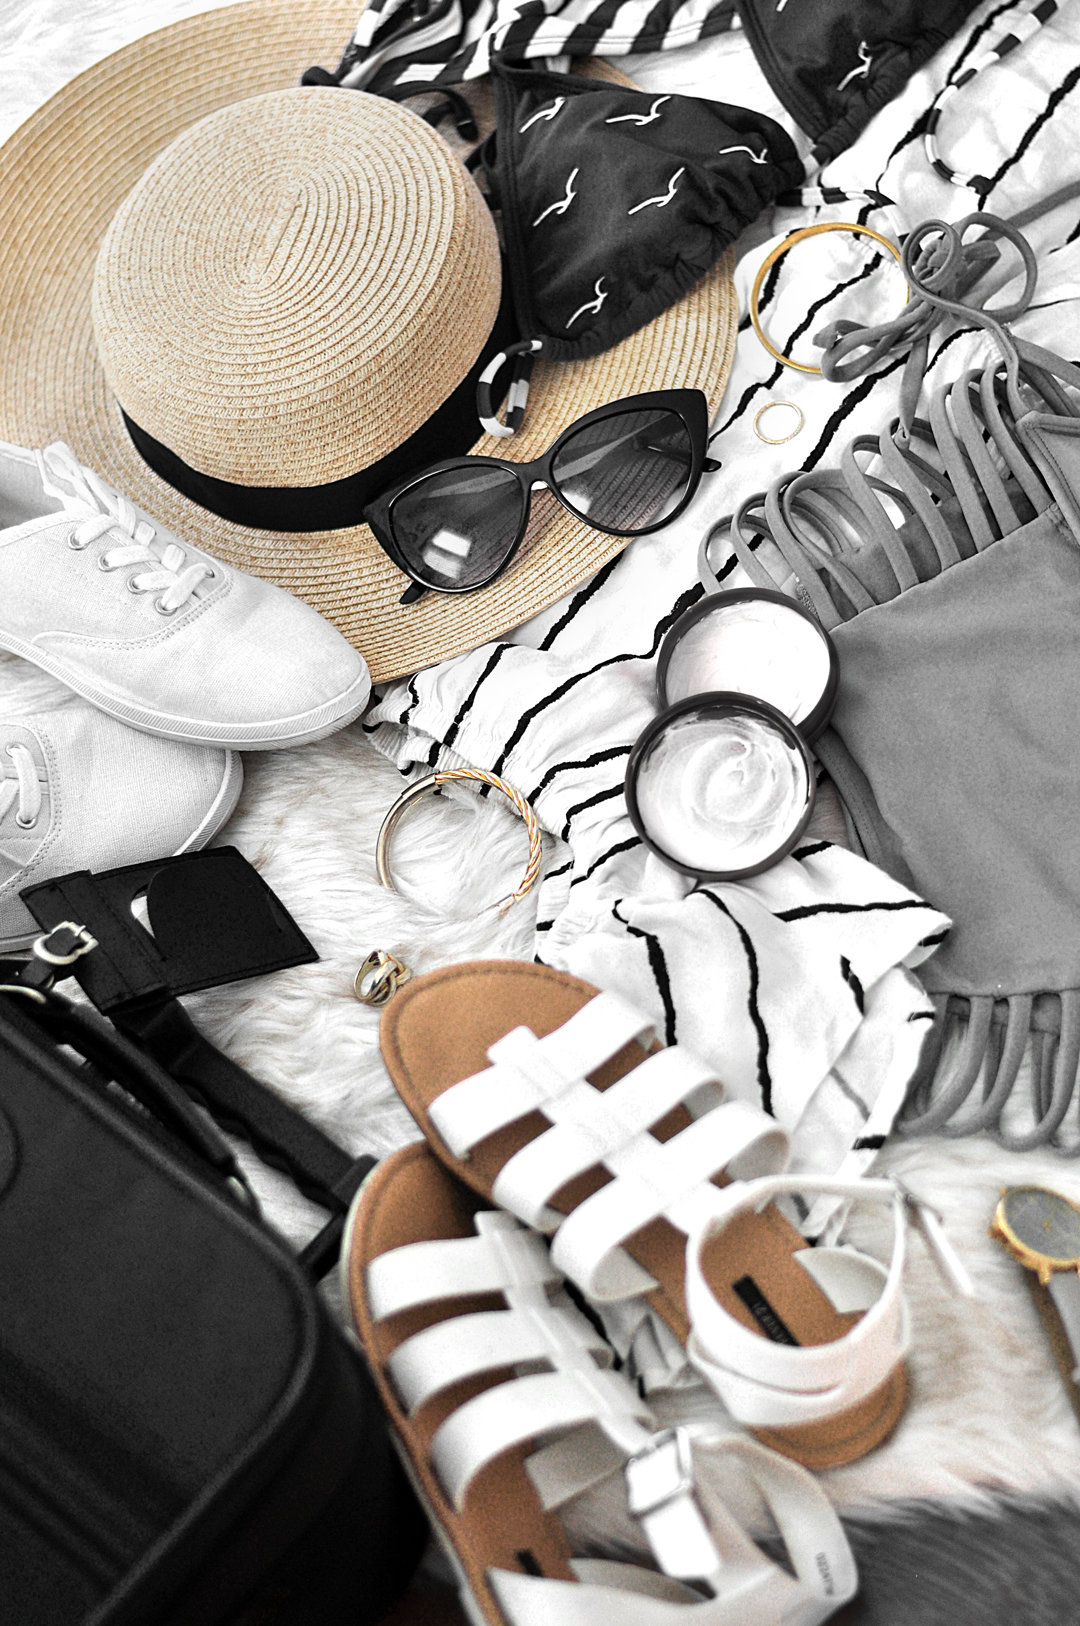 I hate packing, but this list makes it SO much easier to know what to pack for a summer vacation. Now I can pack more quickly and efficiently!